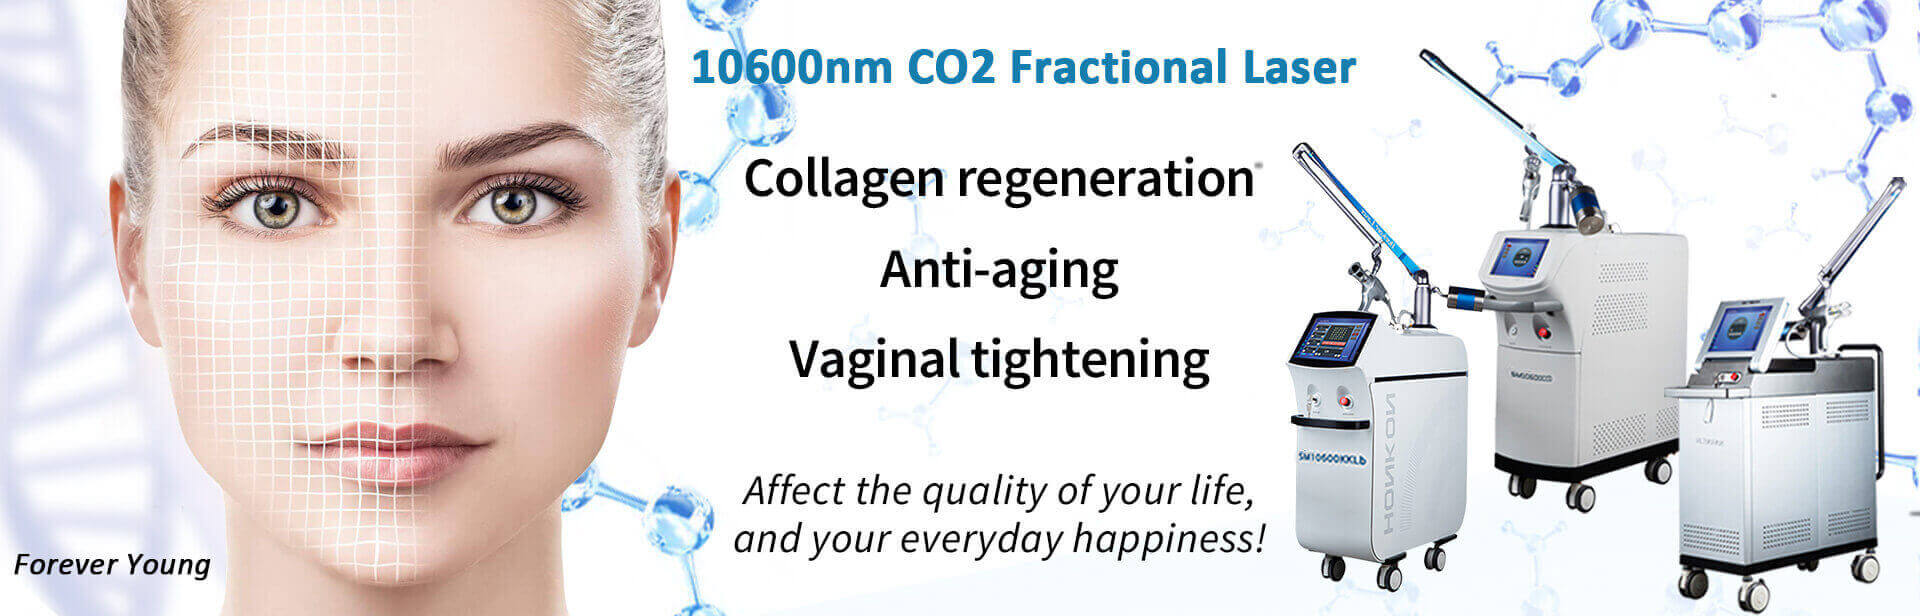 10600nm CO2 Fractional Laser